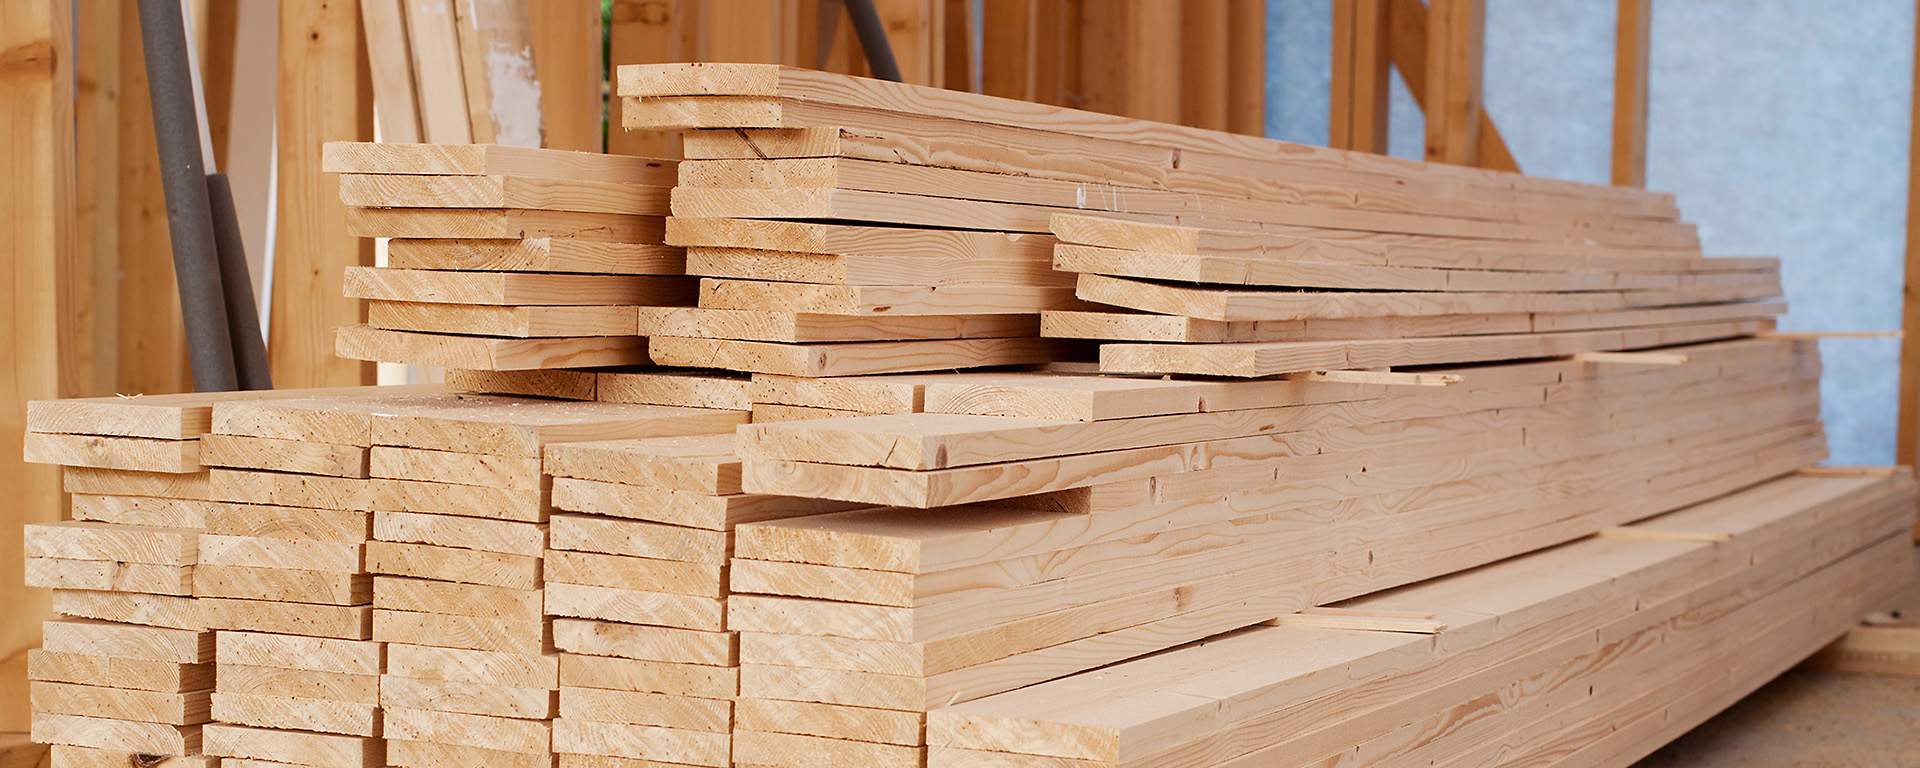 Pile of lumber at a construction site.